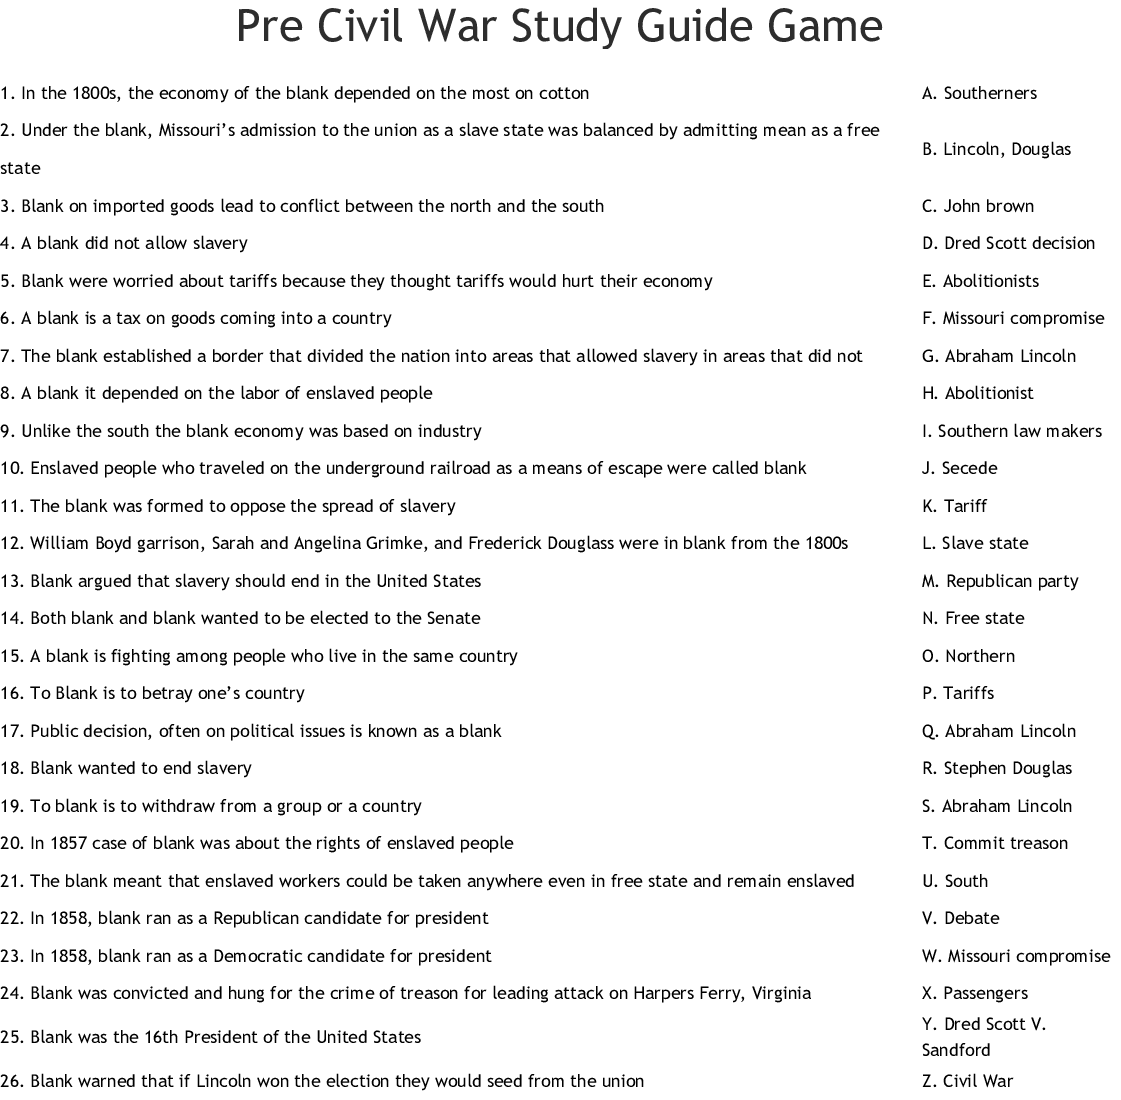 Pre Civil War Study Guide Game Worksheet